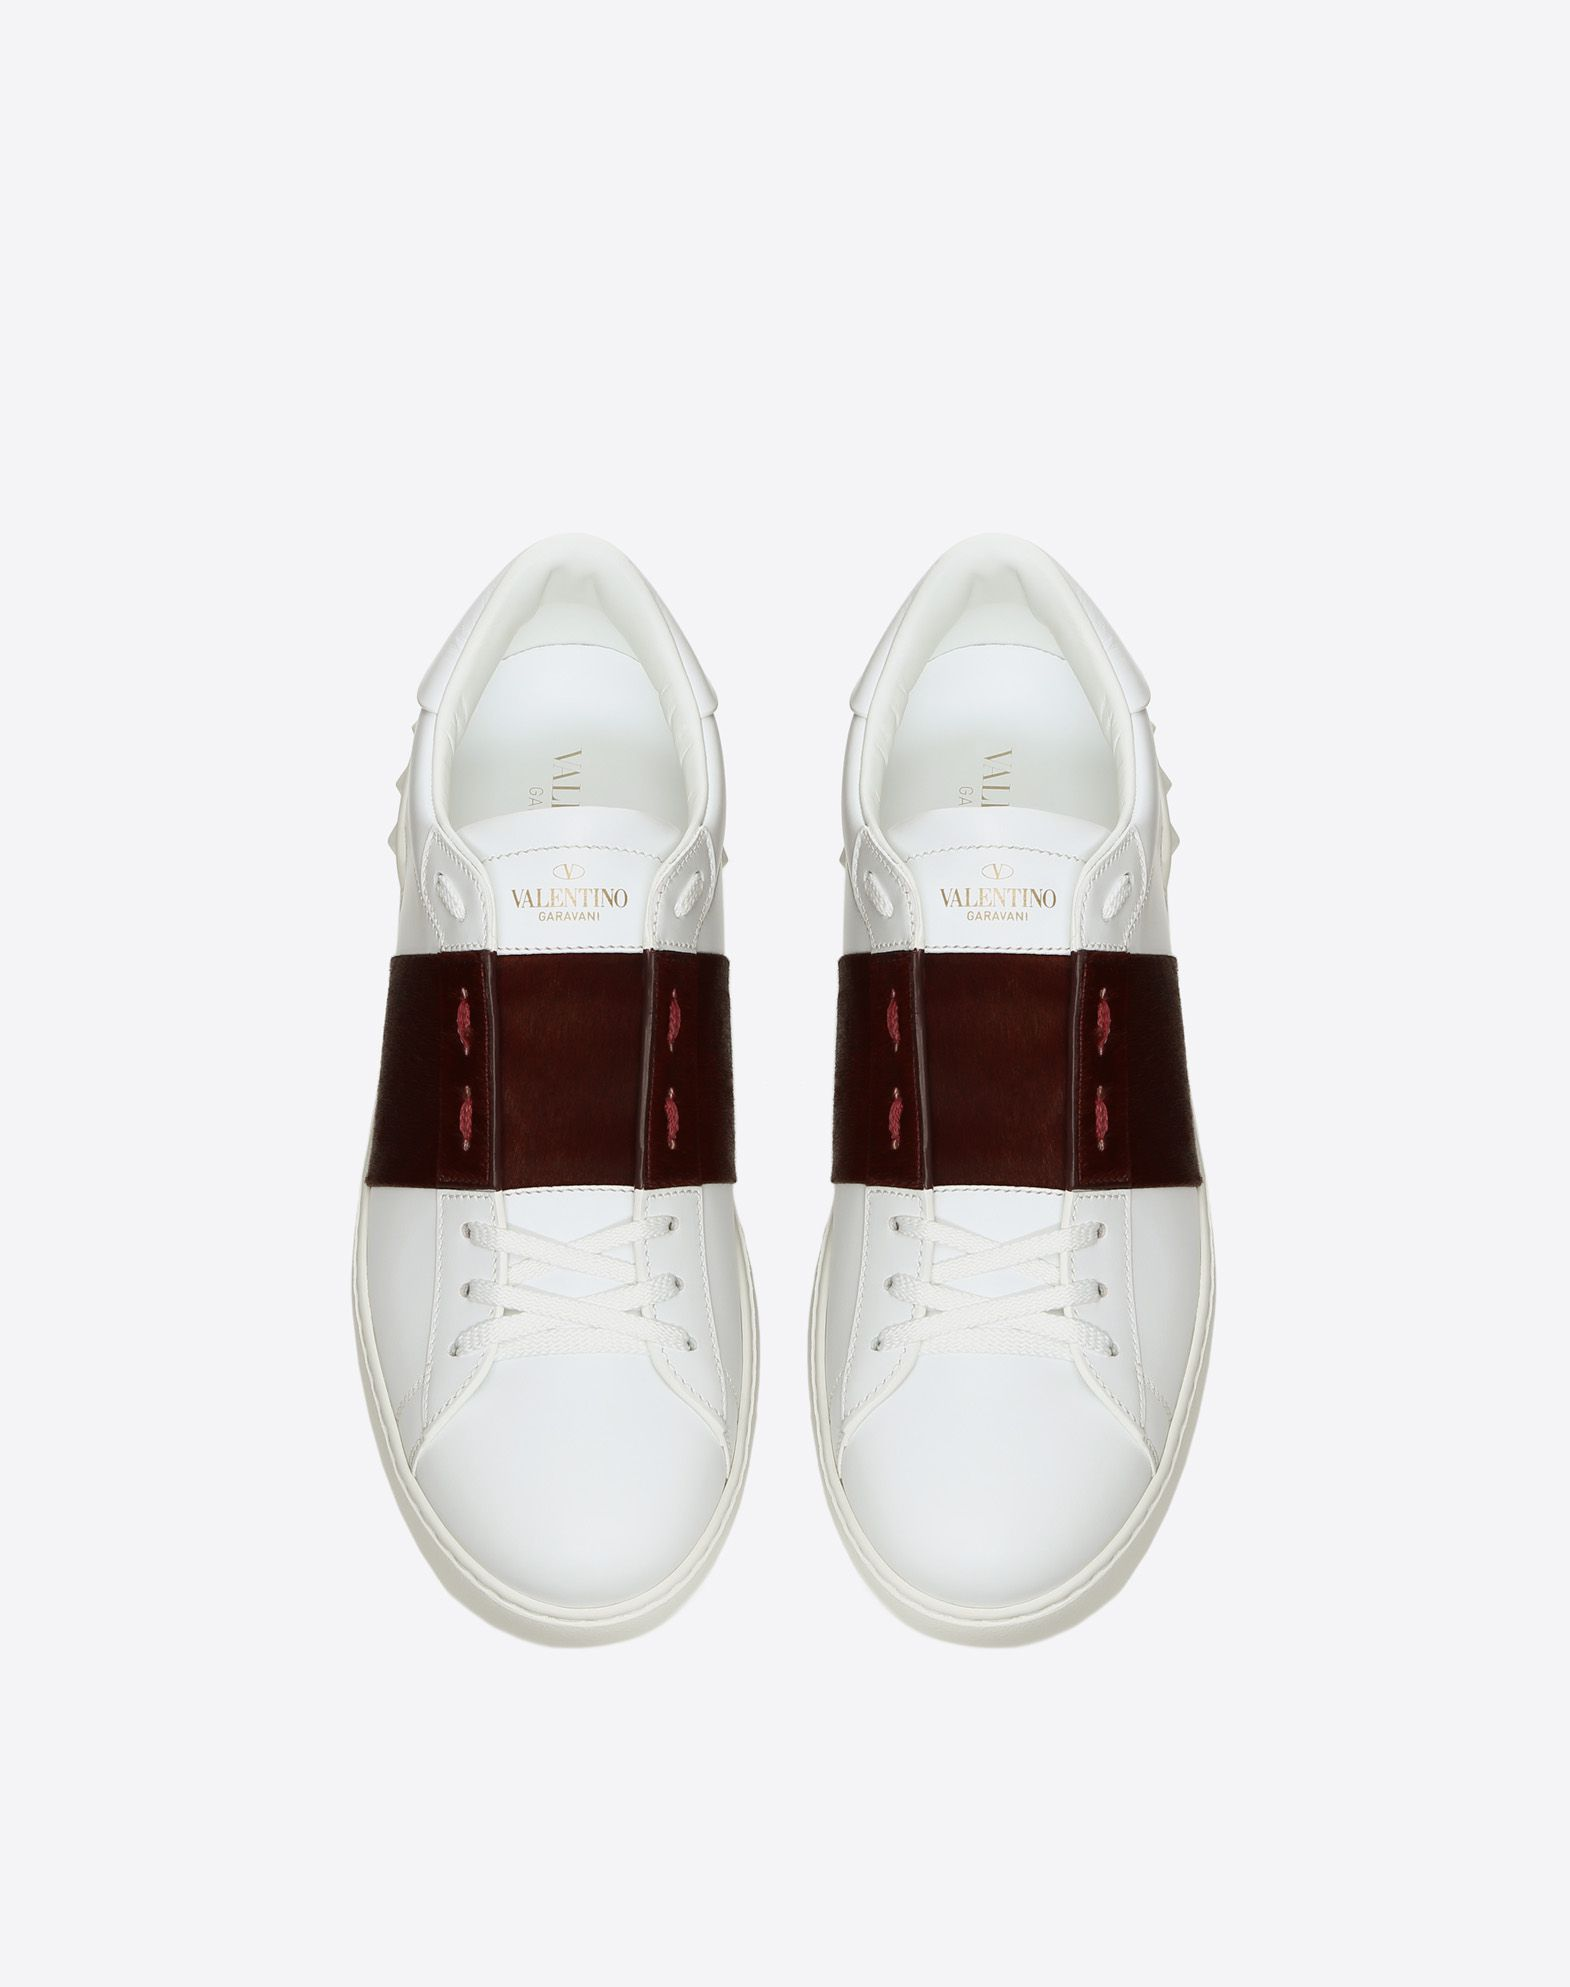 VALENTINO Two-tone Contrasting applications Round toeline Leather lining Laces Rubber sole Logo Calf hair  45405978gl